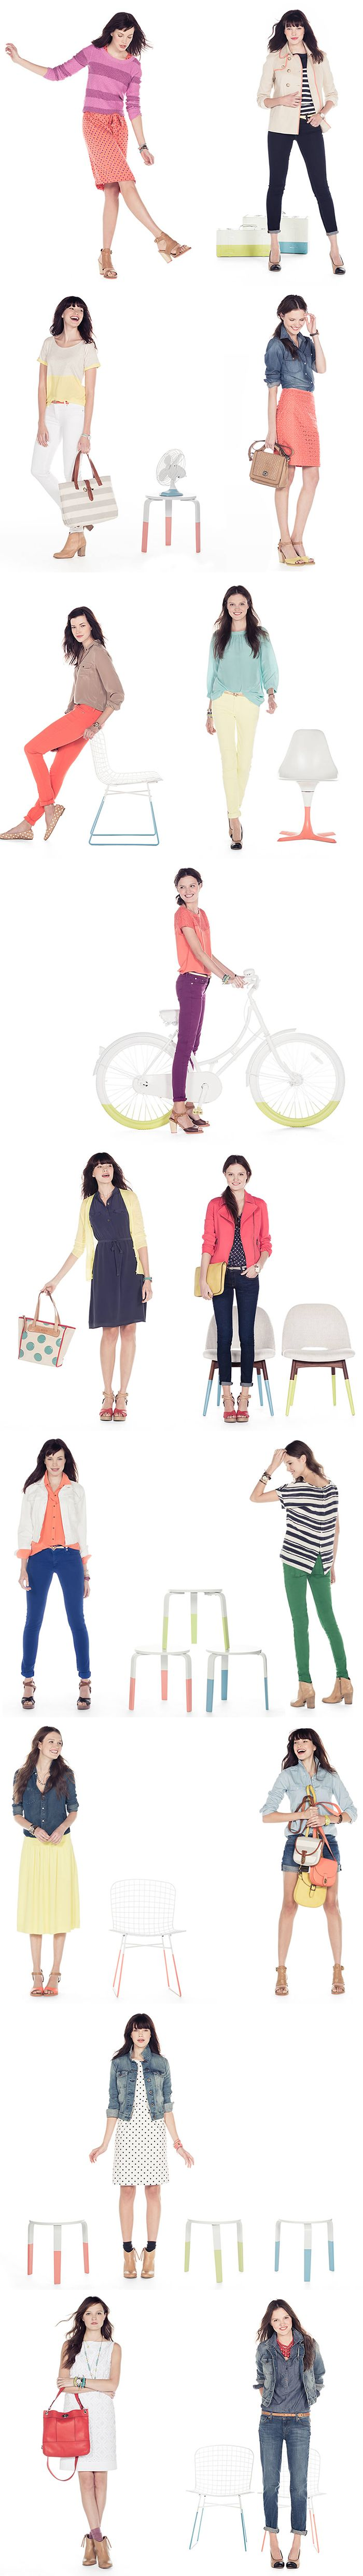 Freshly picked looks! #Fossil #SongofSpring #Spring Register to Win Here: http://on.fb.me/Y44D7O